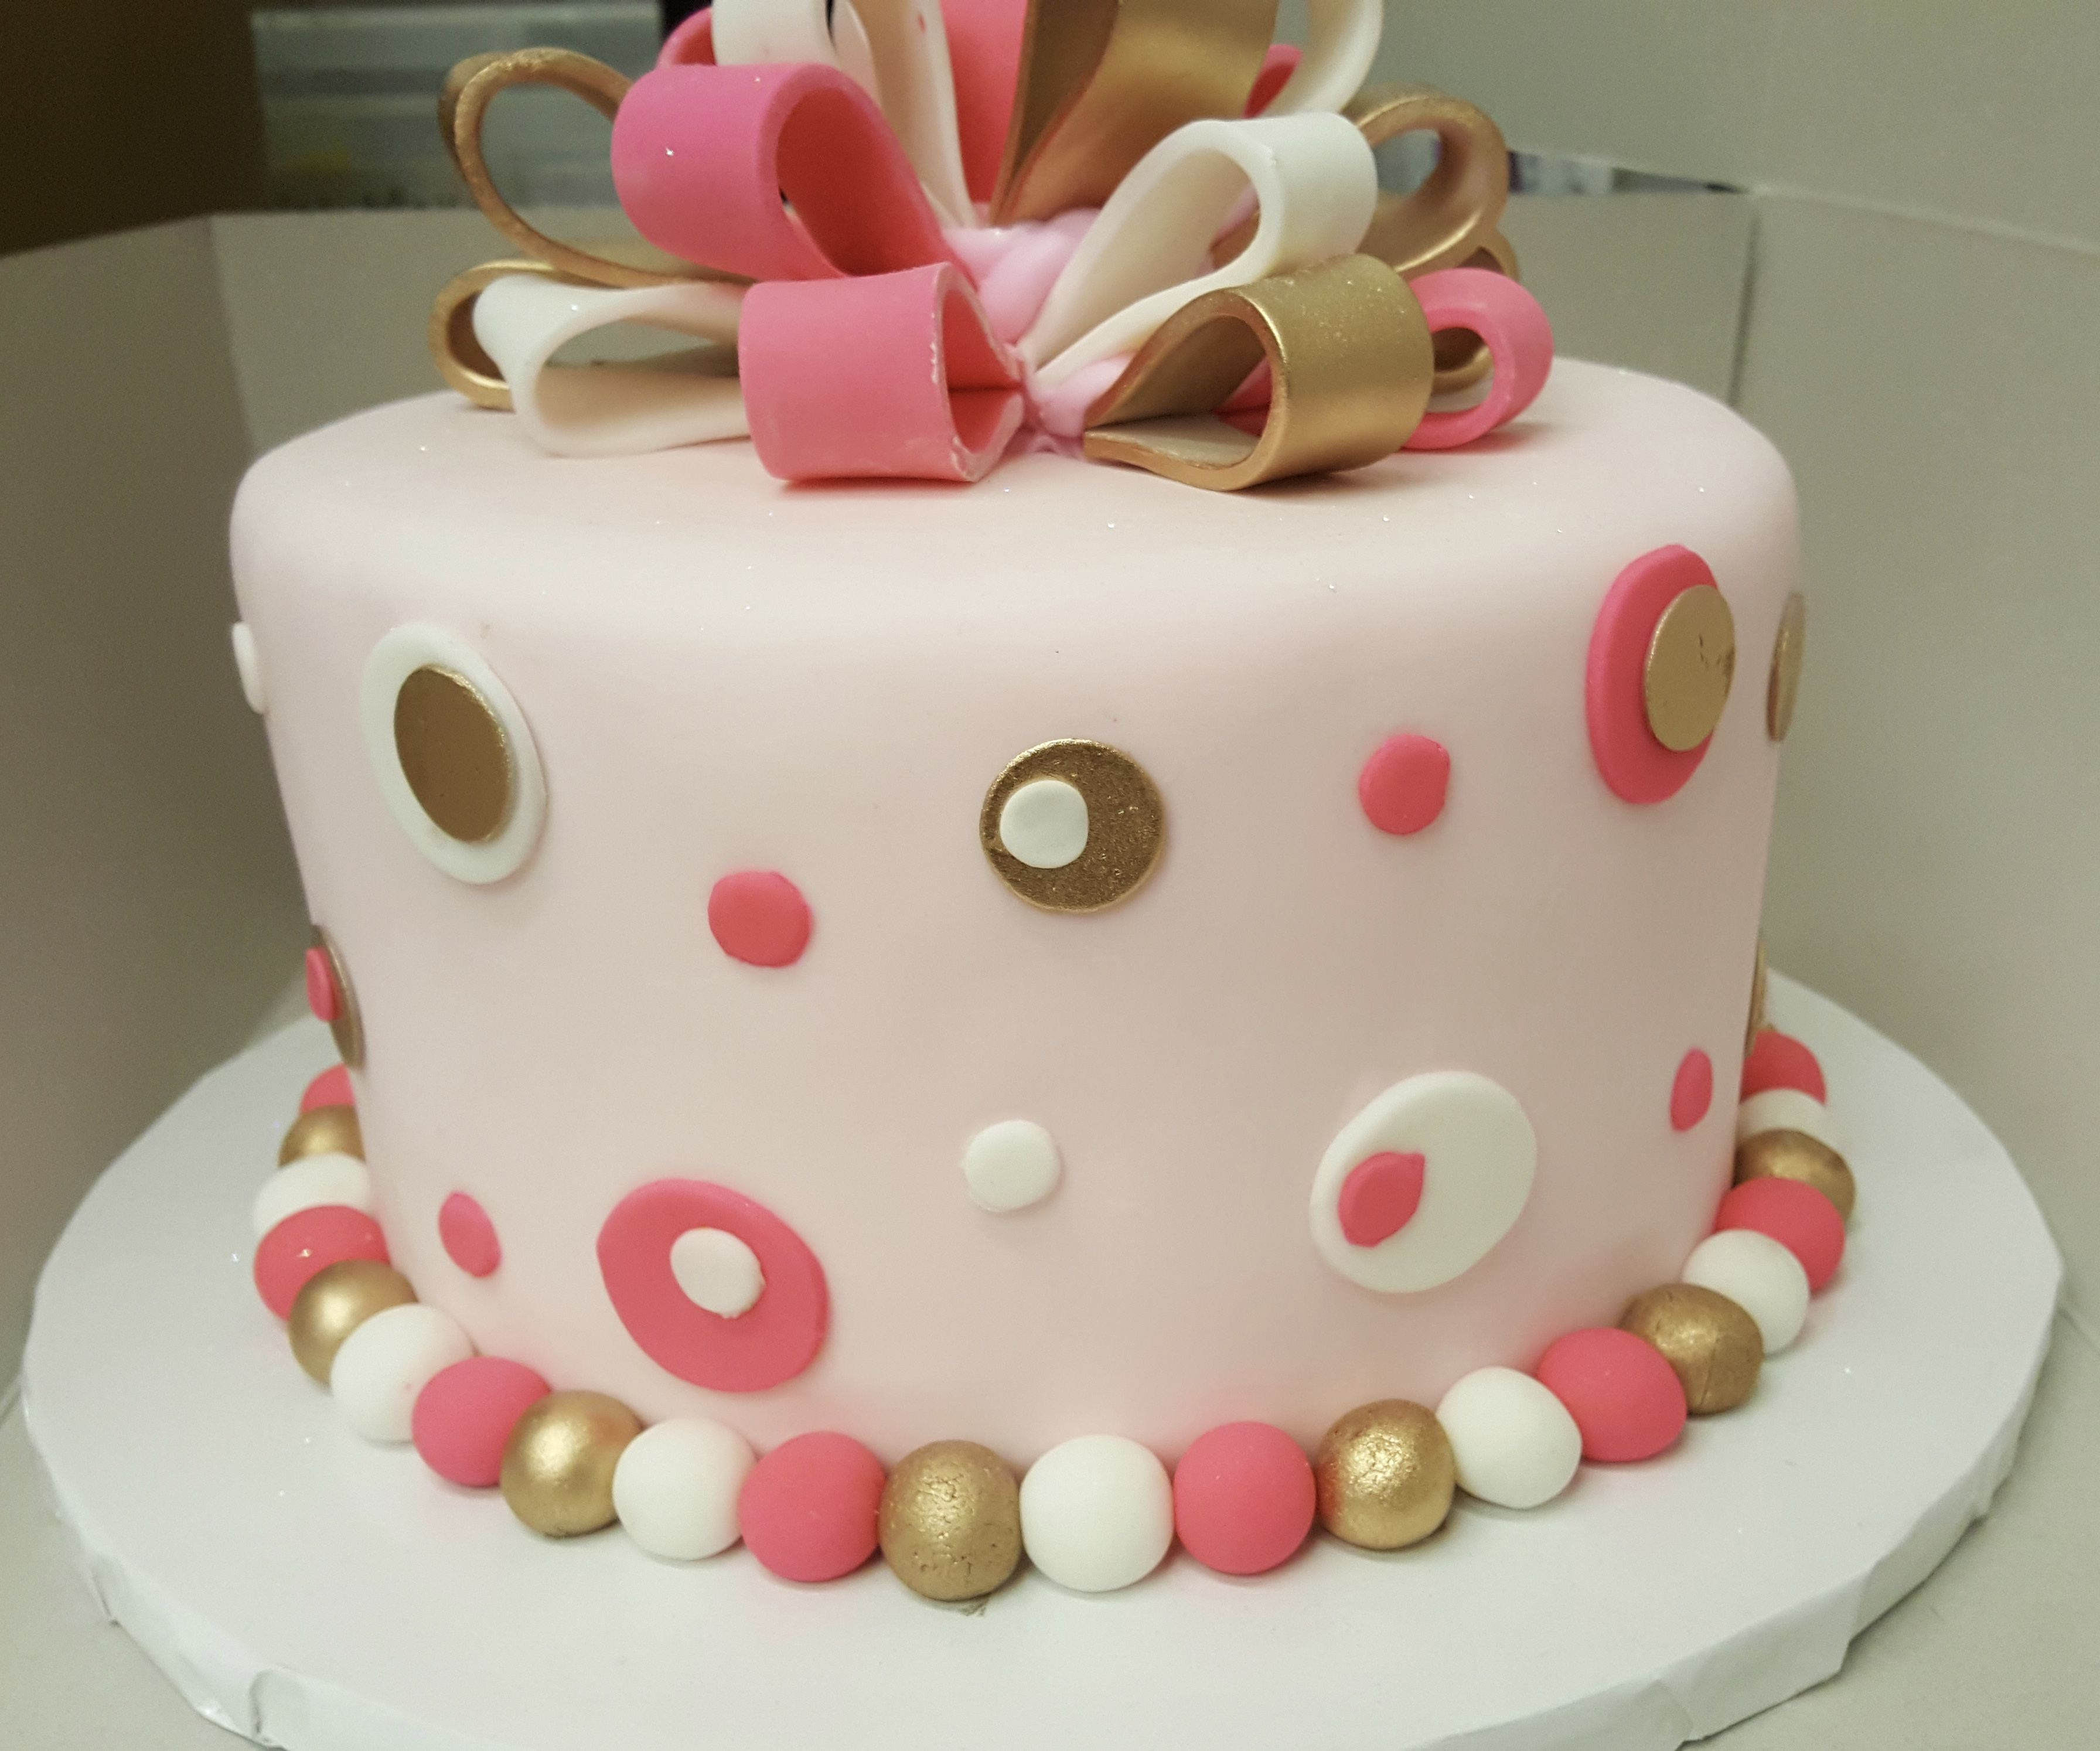 Tremendous Calumet Bakery Balls And Bows Simple Fondant Cake Fondant Cakes Funny Birthday Cards Online Bapapcheapnameinfo